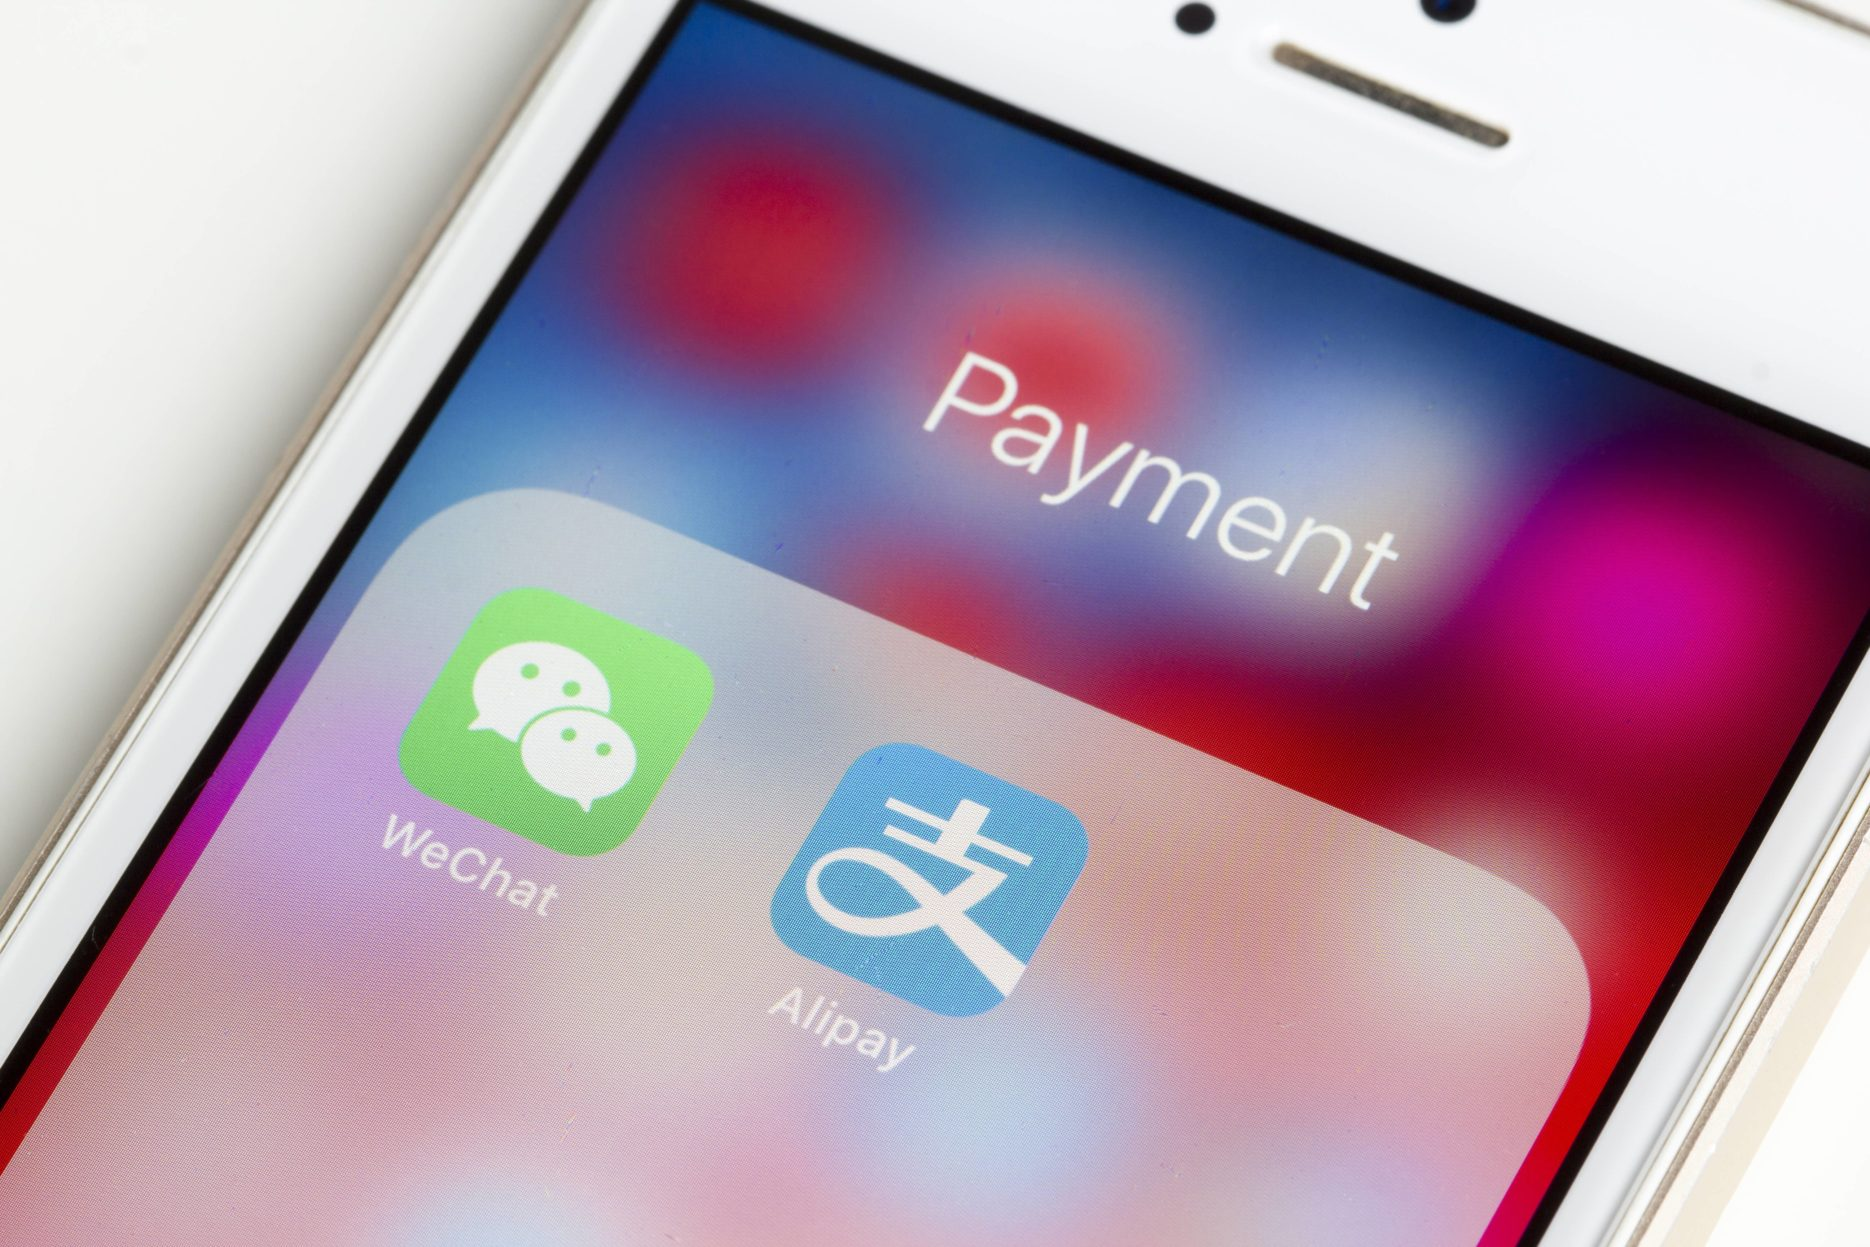 Alipay and WeChat. Credit: Adobe Stock